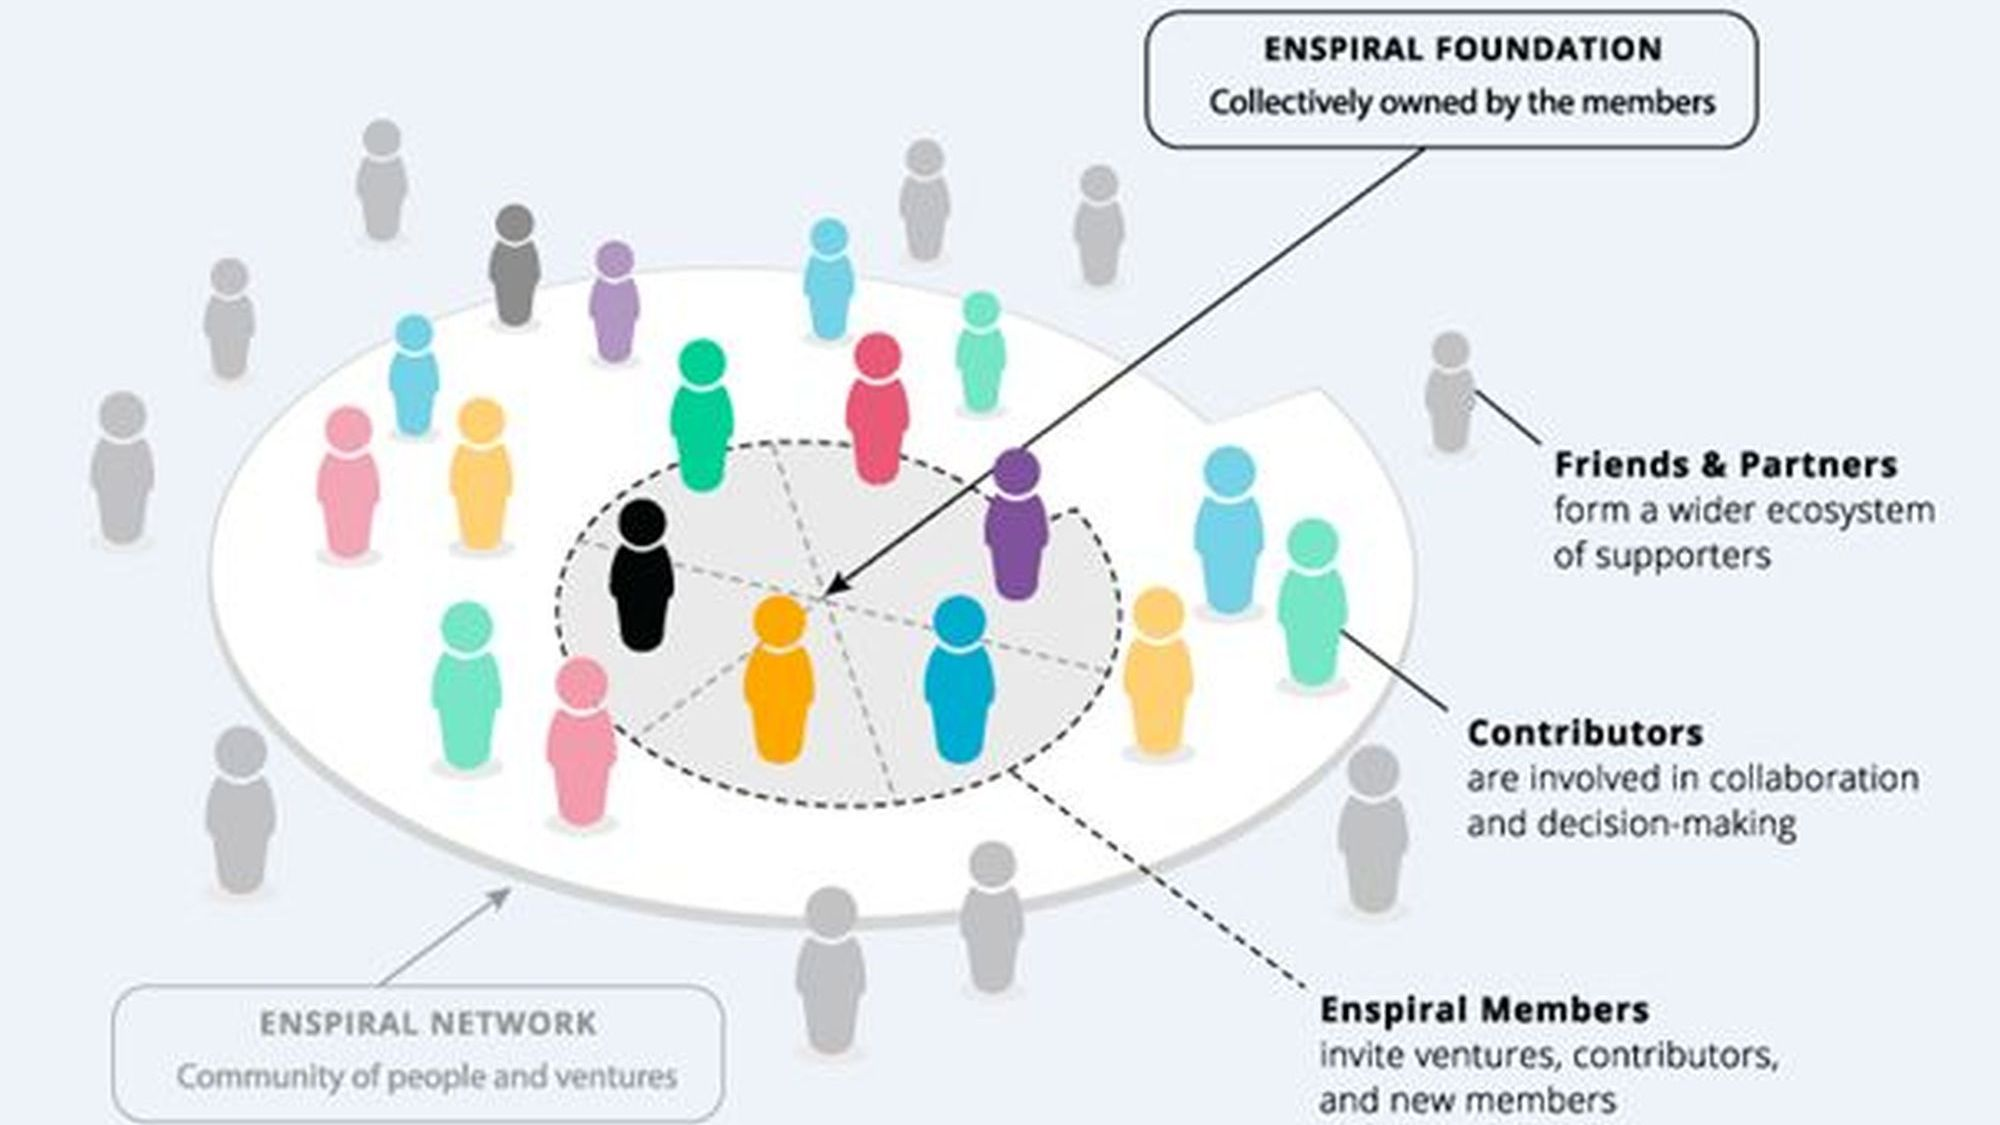 Enspiral Foundation